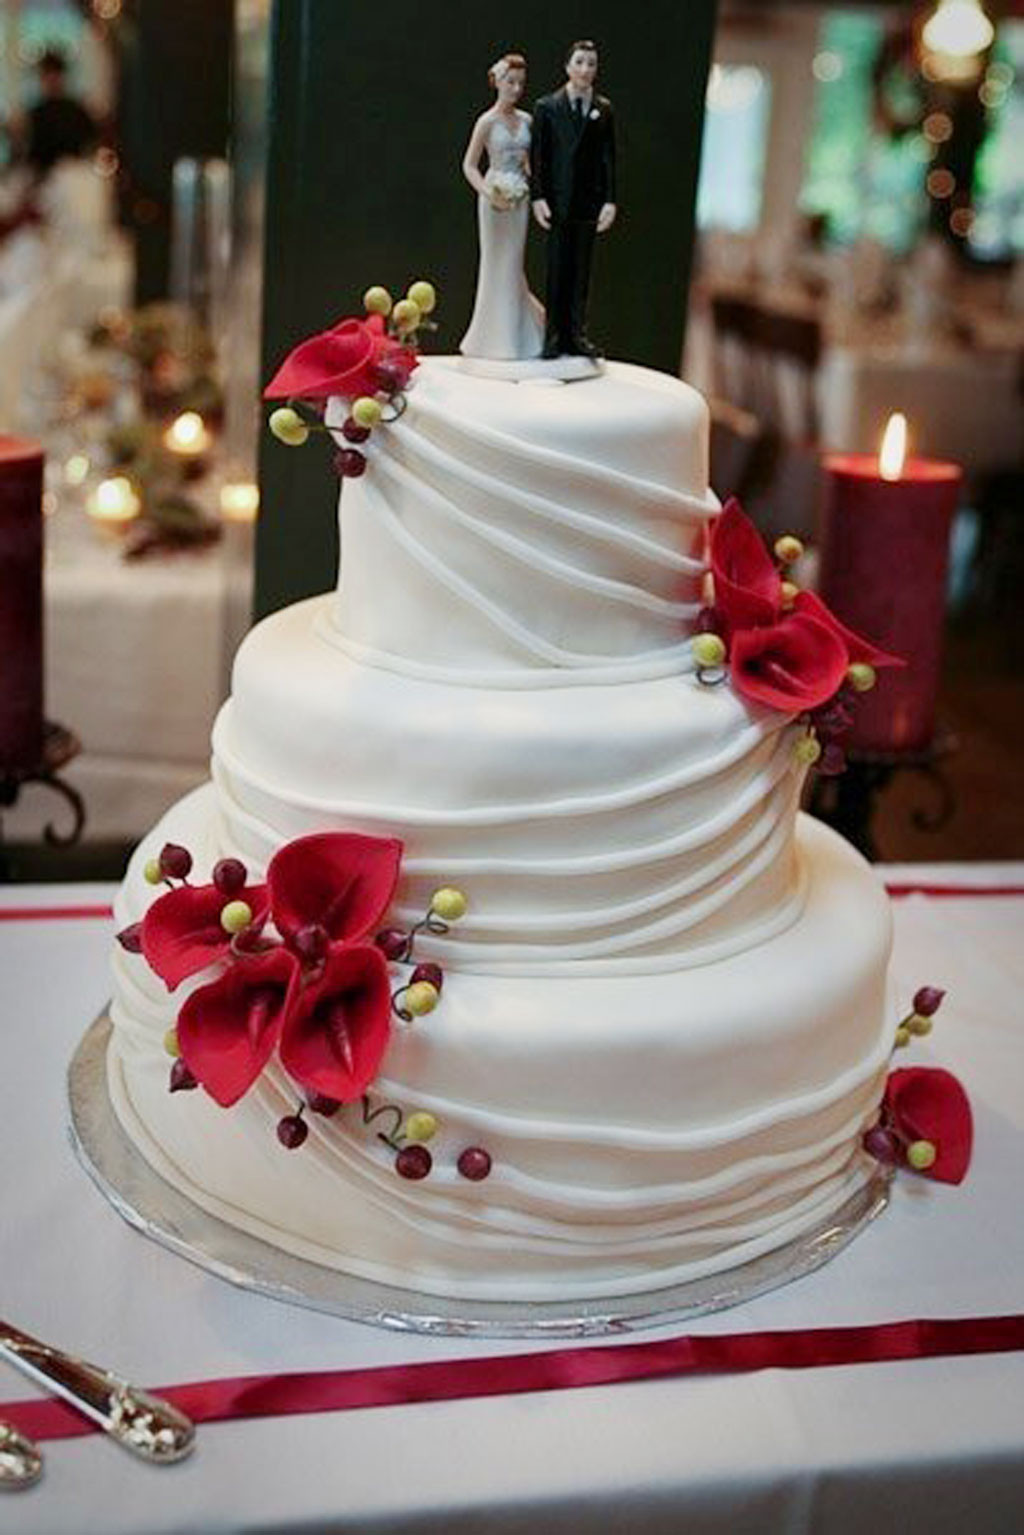 Cakes Designs For Wedding  Red Calla Lily Wedding Cake Design 2 Wedding Cake Cake